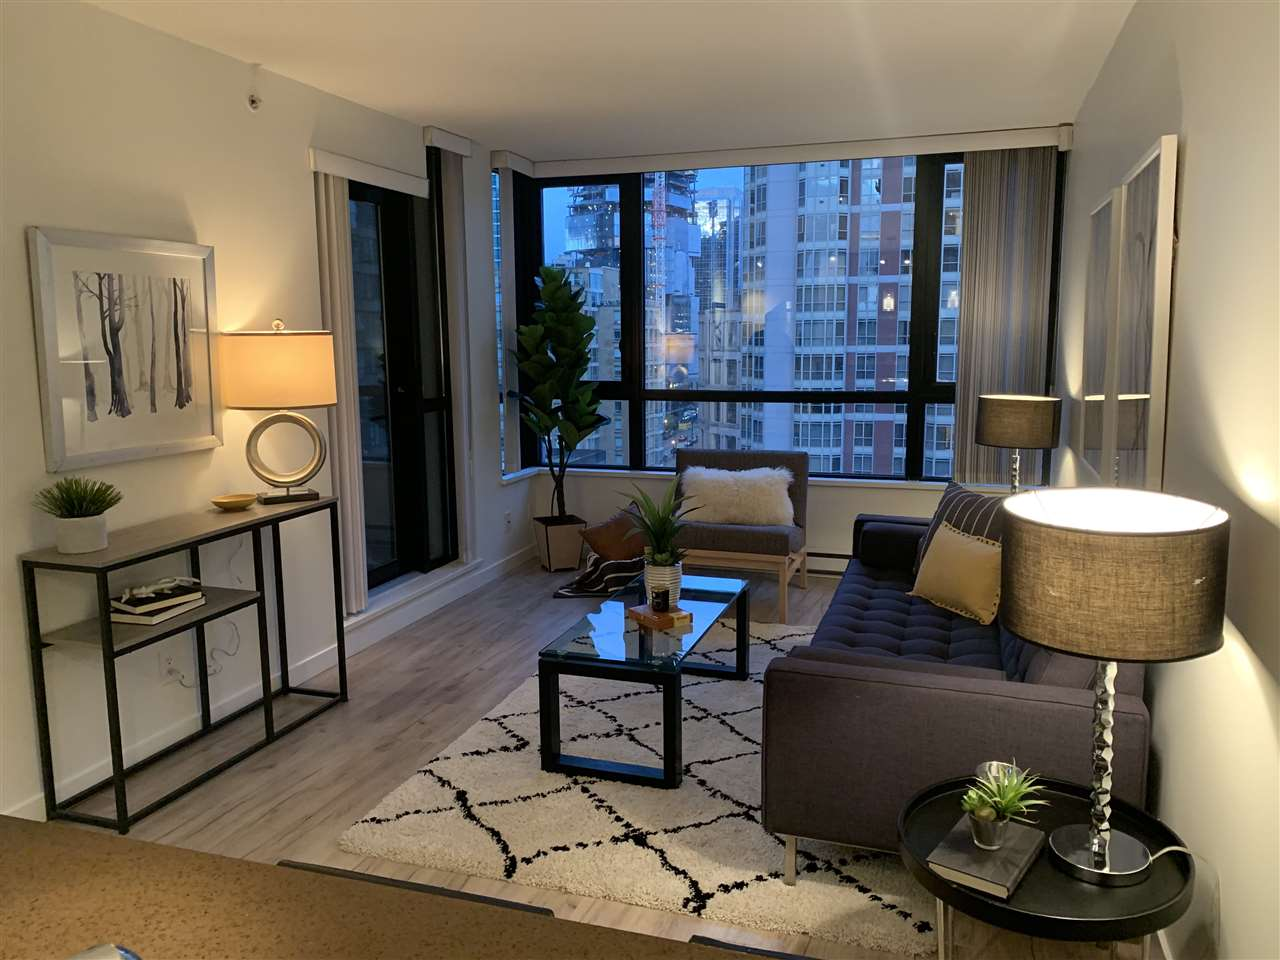 1810 909 MAINLAND STREET - Yaletown Apartment/Condo for sale, 1 Bedroom (R2518845) - #1